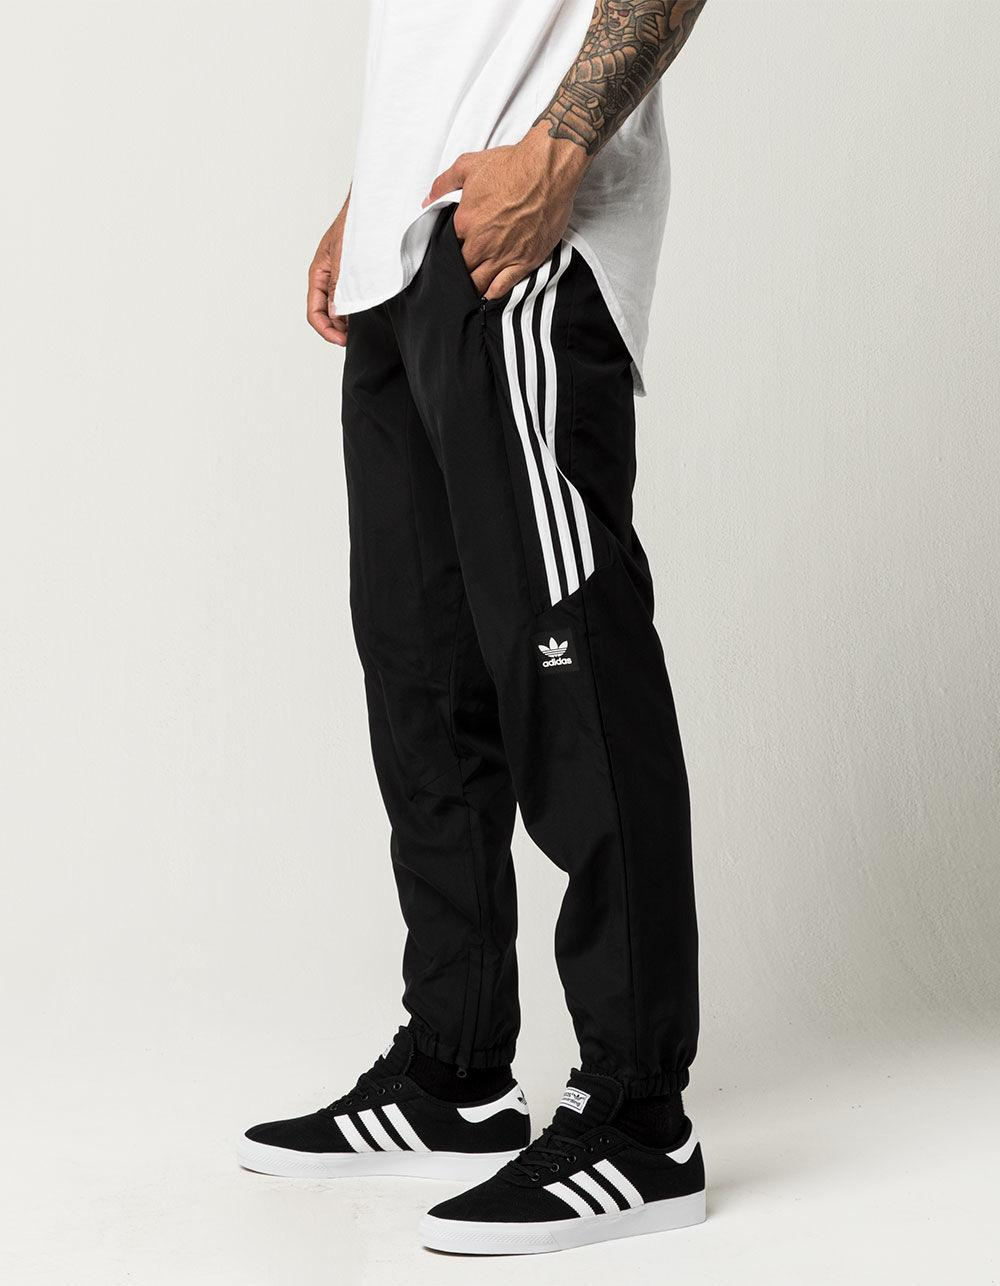 943c87a24199 Lyst - adidas Classic Mens Track Pants in Black for Men